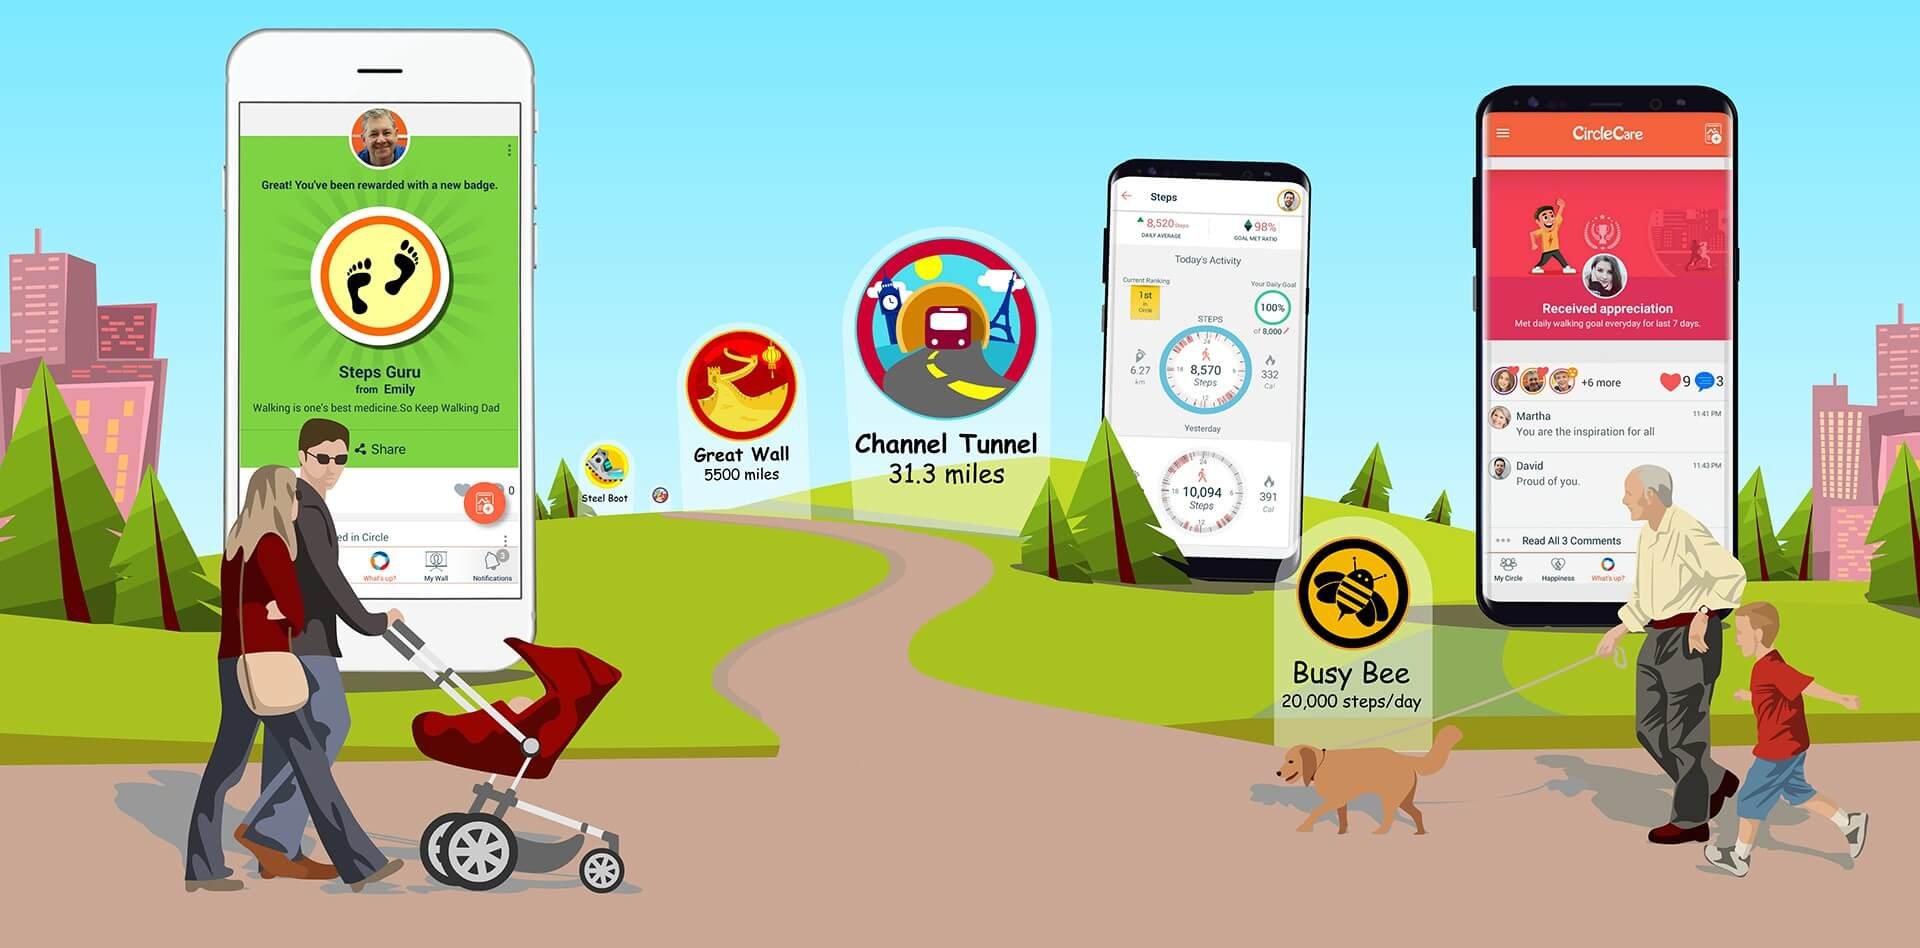 CircleCare motivate your entire family to stay physically active